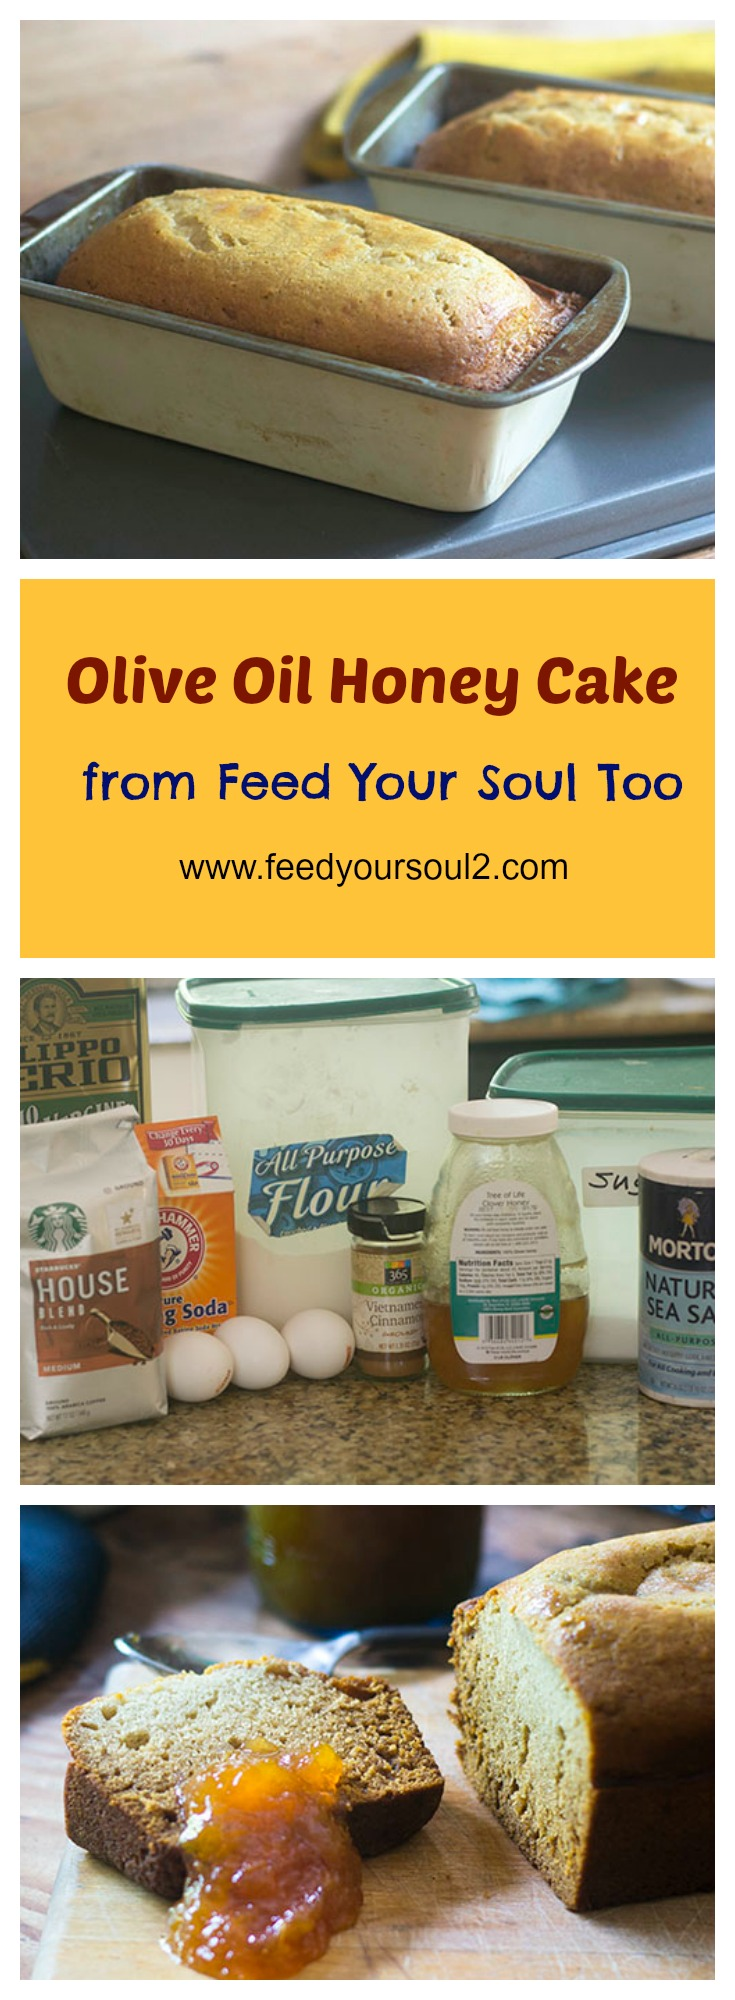 Olive Oil Honey Cake #cake #holiday #honey | feedyoursoul2.com